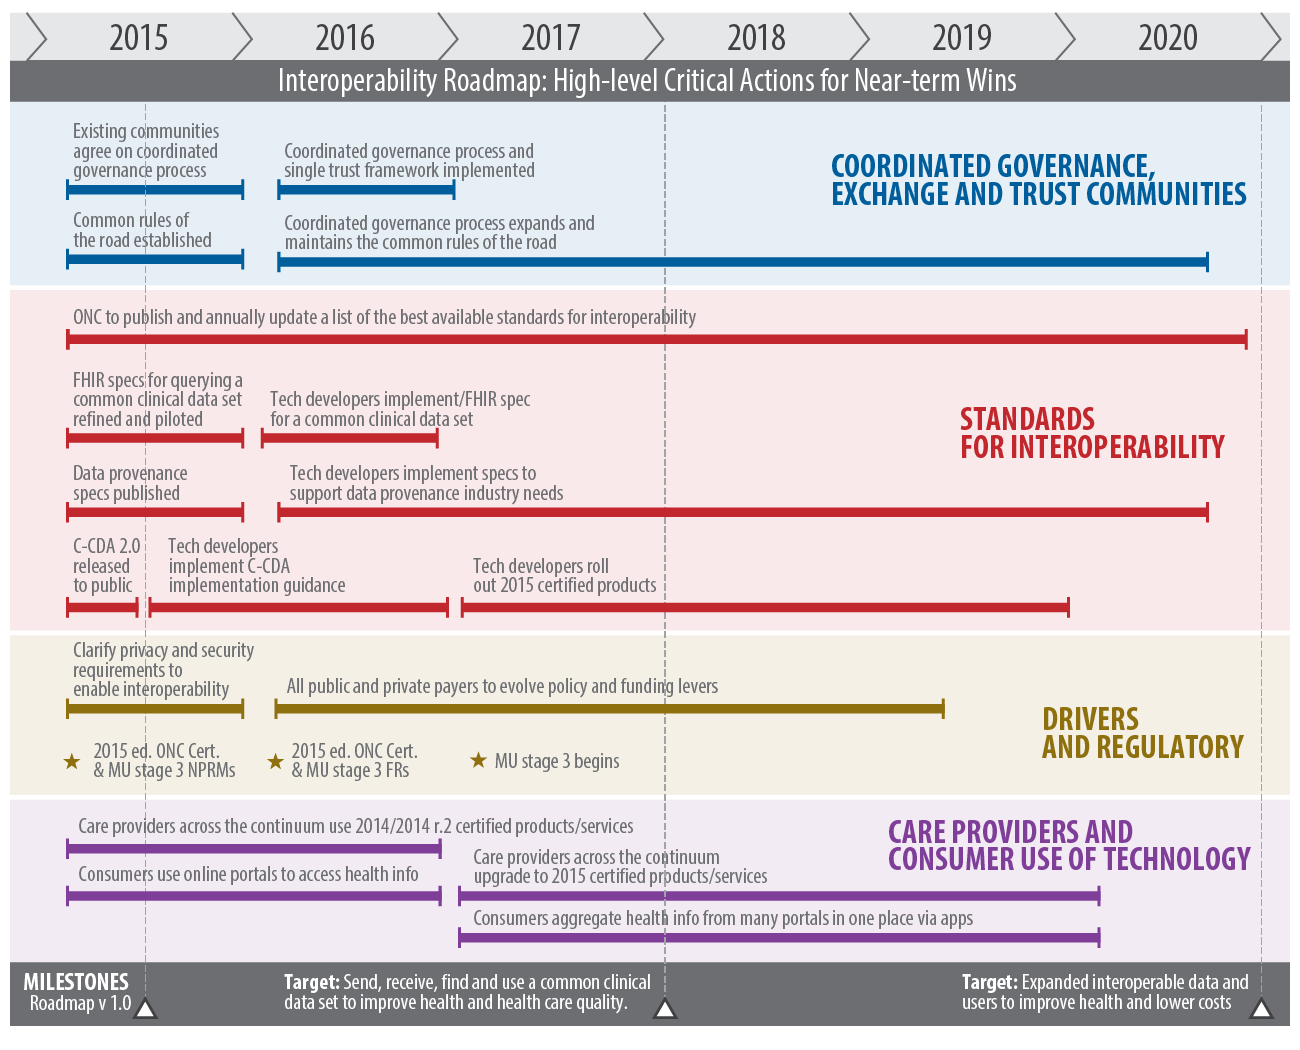 Figure 2: Timeline of Select High-Level Critical Actions for